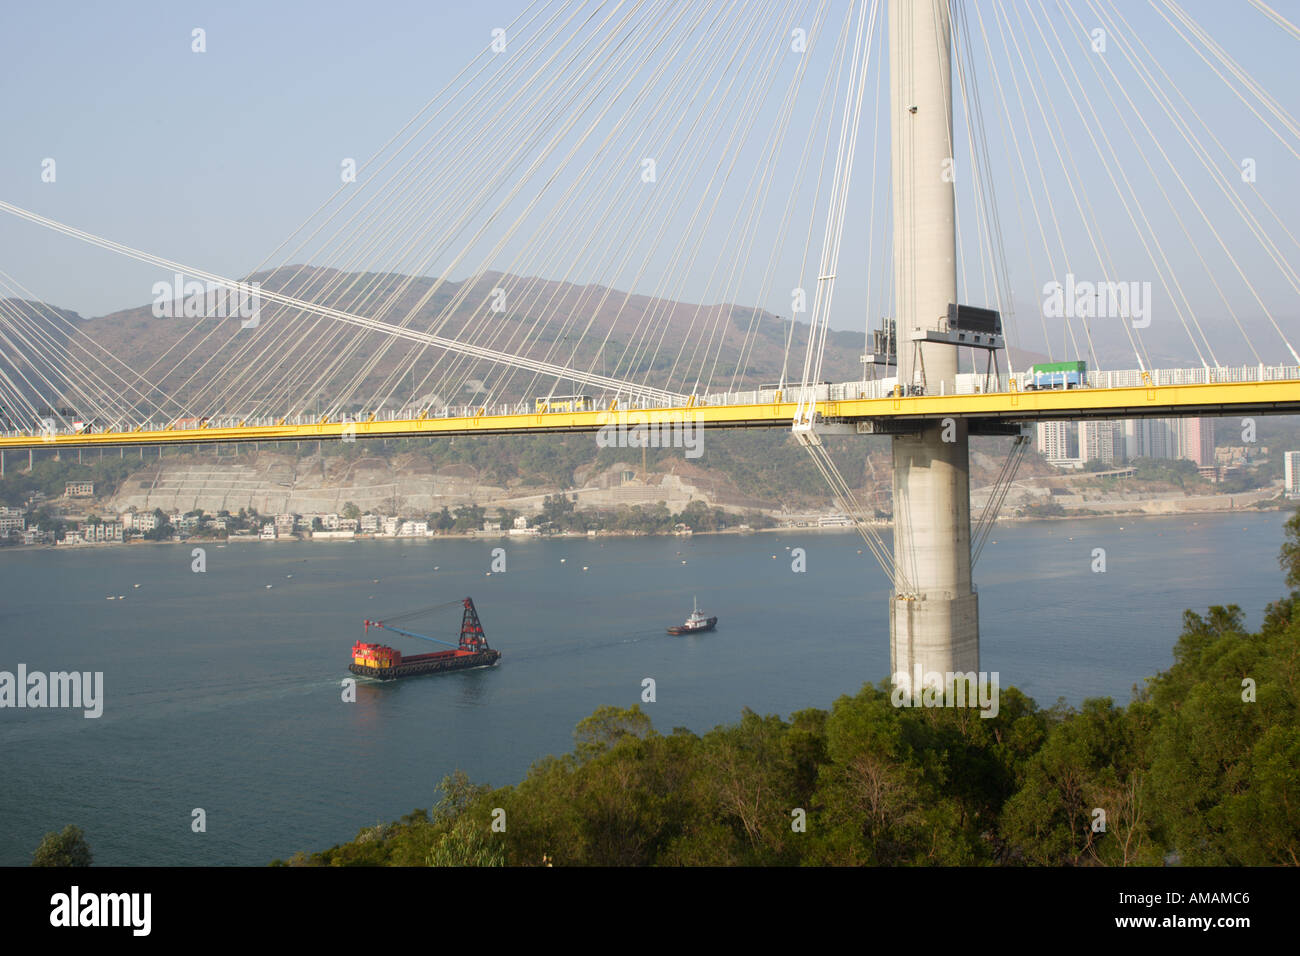 Ting Kau Bridge - Stock Image